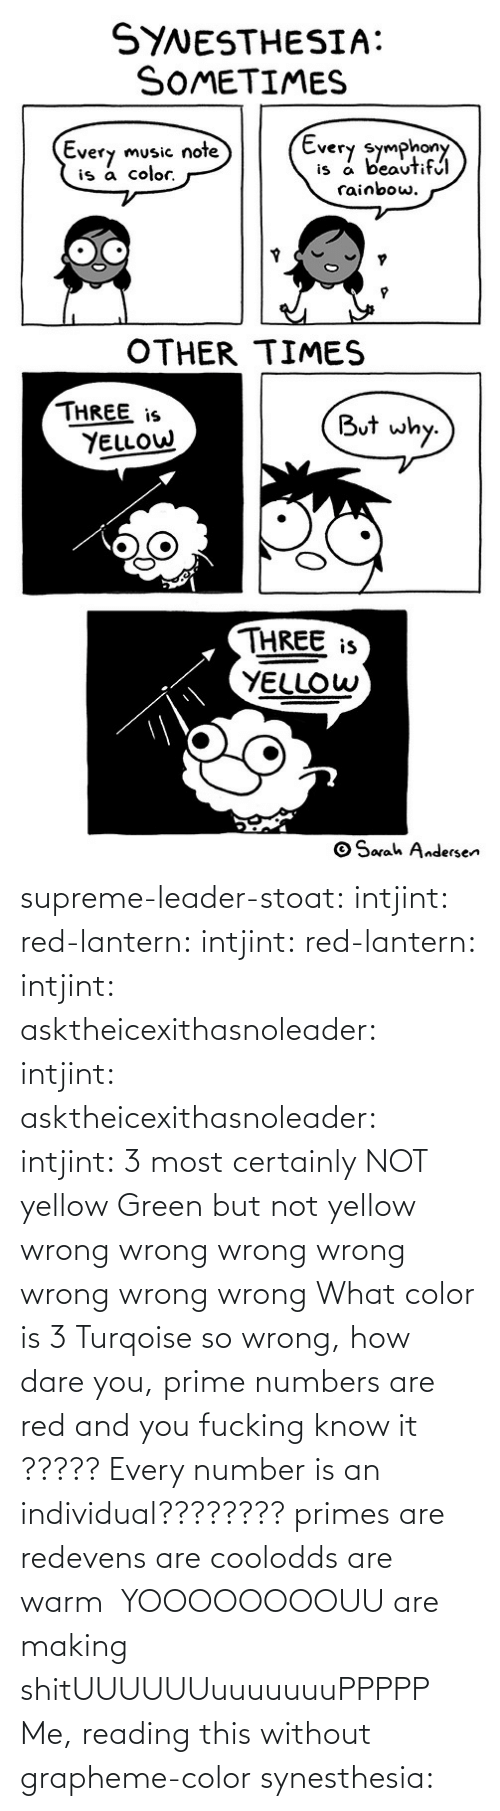 What Color: supreme-leader-stoat: intjint:  red-lantern:  intjint:  red-lantern:  intjint:  asktheicexithasnoleader:  intjint:   asktheicexithasnoleader:  intjint:  3 most certainly NOT yellow   Green but not yellow  wrong wrong wrong wrong wrong wrong wrong    What color is 3  Turqoise  so wrong, how dare you, prime numbers are red and you fucking know it   ????? Every number is an individual????????  primes are redevens are coolodds are warm   YOOOOOOOOUU are making shitUUUUUUuuuuuuuPPPPP  Me, reading this without grapheme-color synesthesia: